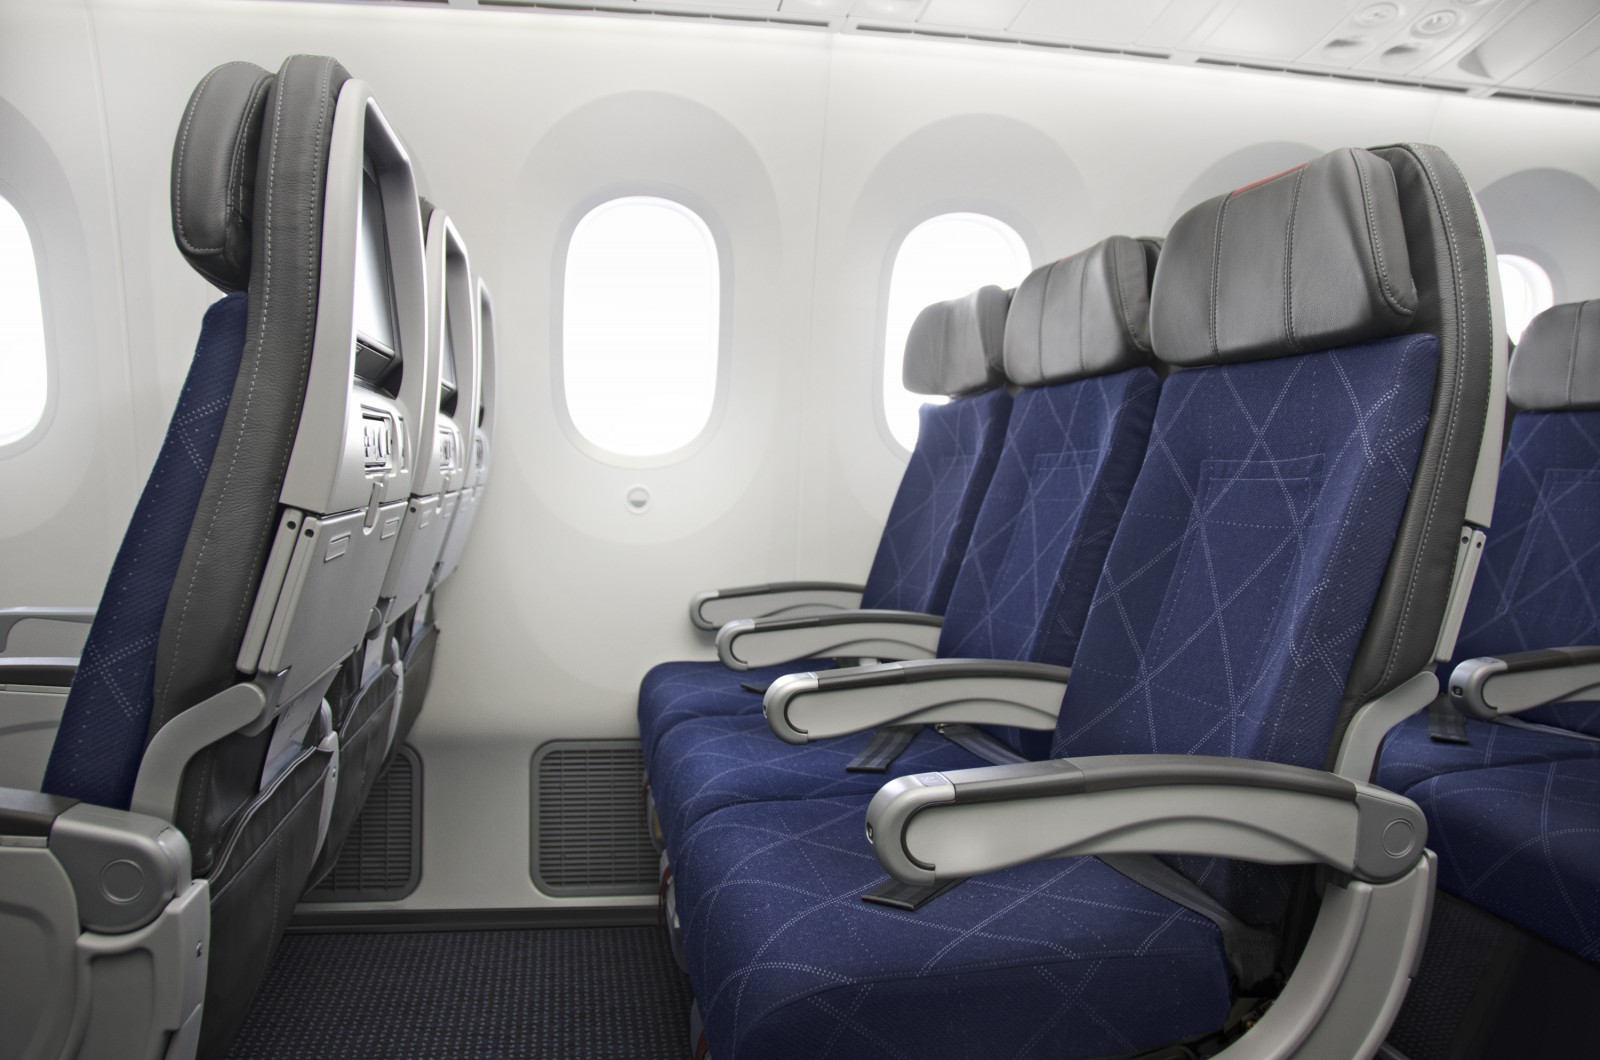 American Airlines Economy Extra Seats